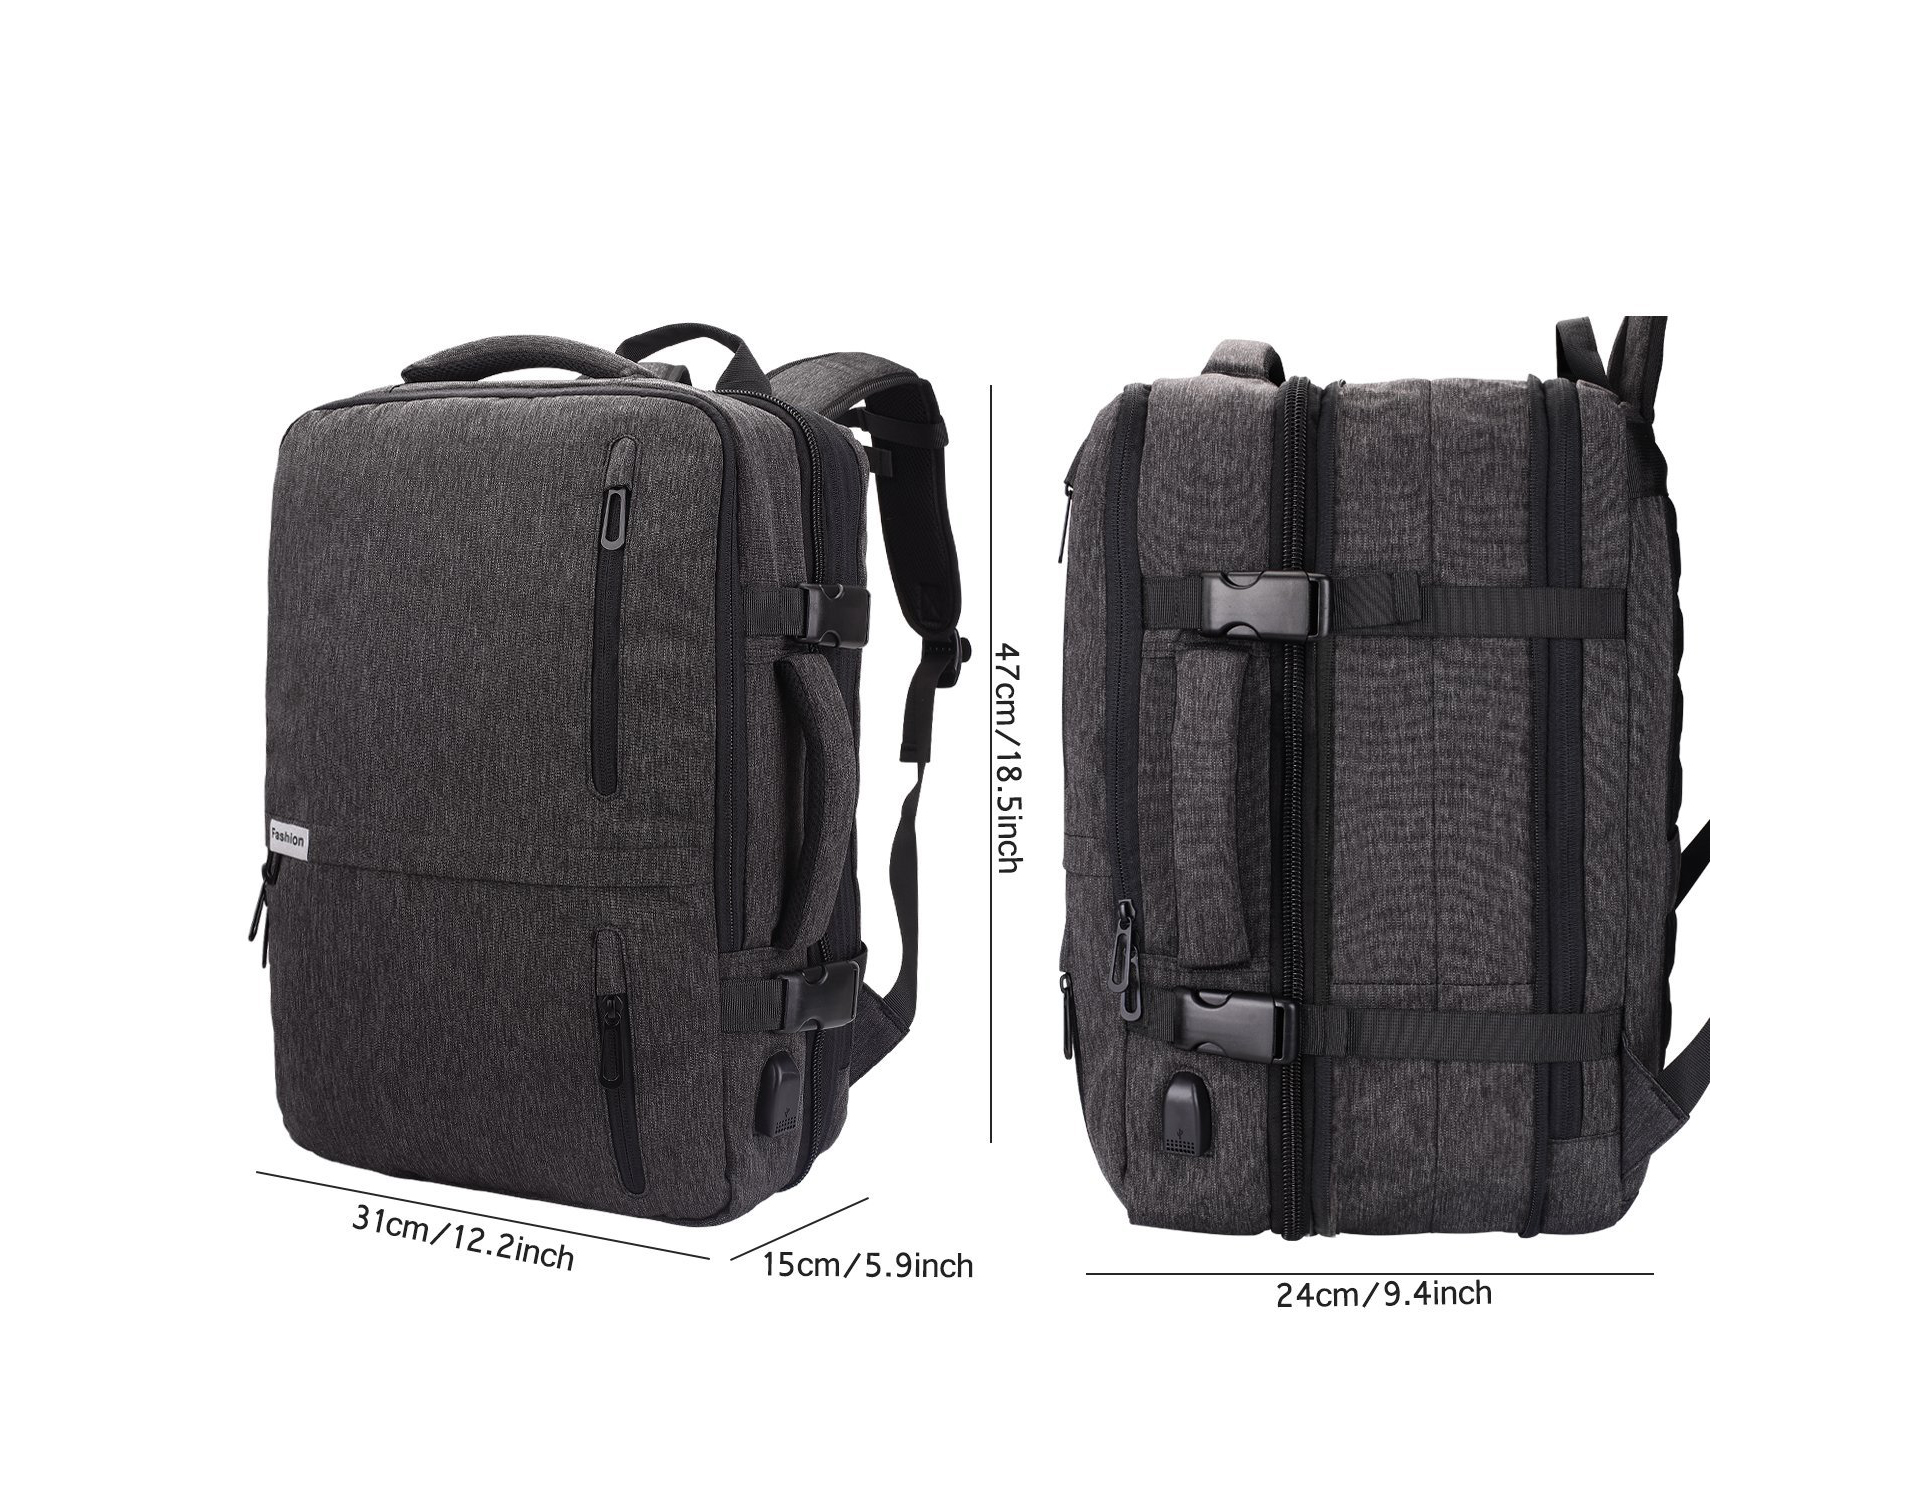 40L Laptop Backpack - lightweight and waterproof